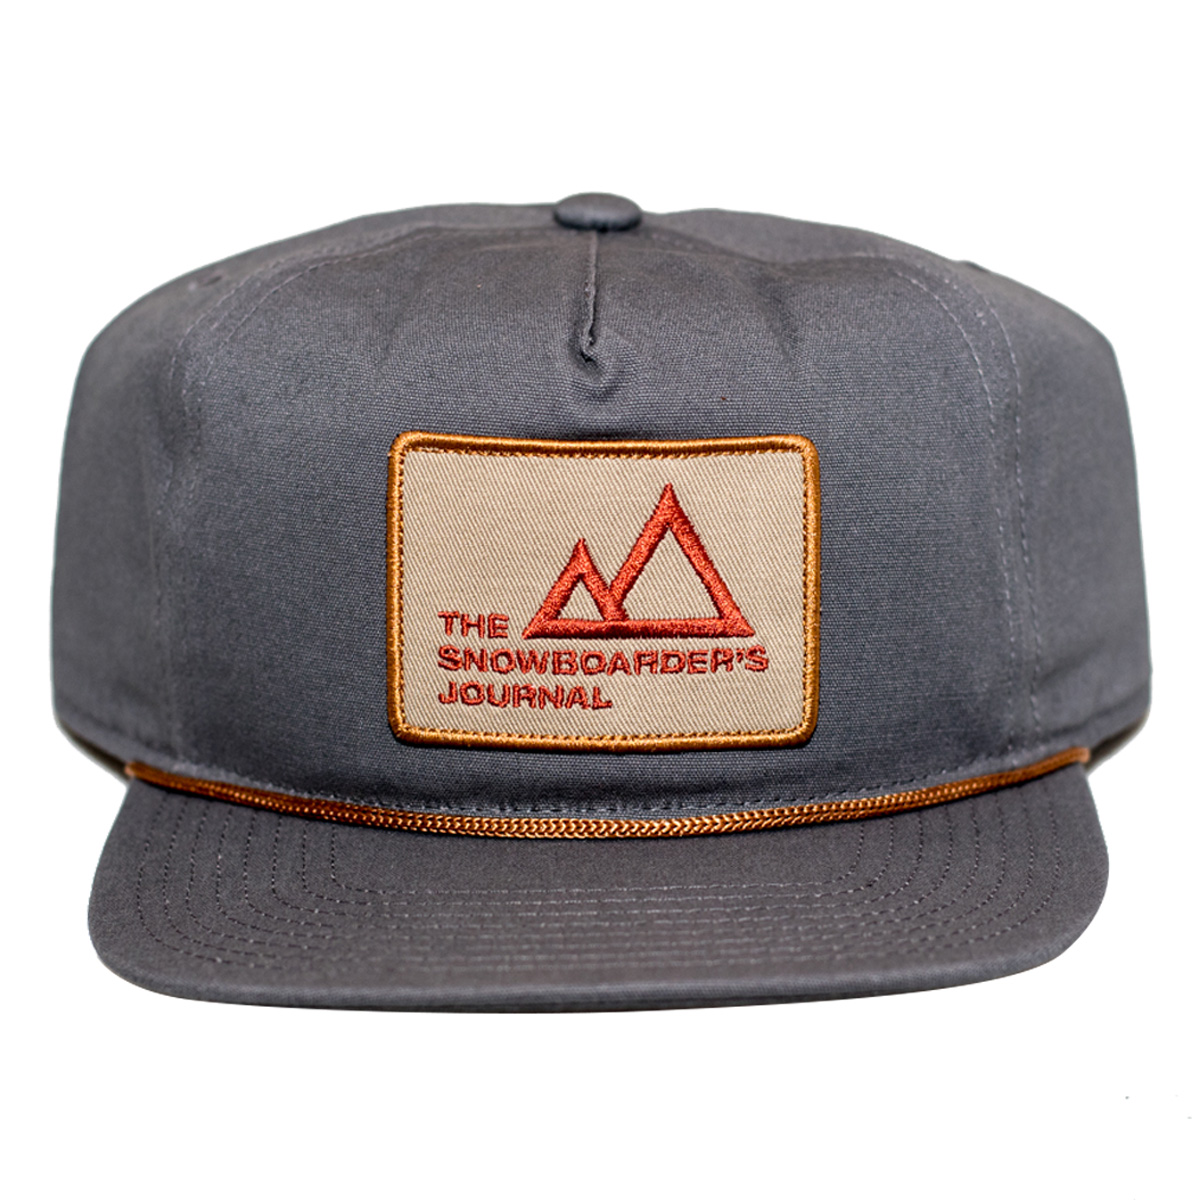 03aaf834814 El Capitan 2.0 - The Snowboarders Journal